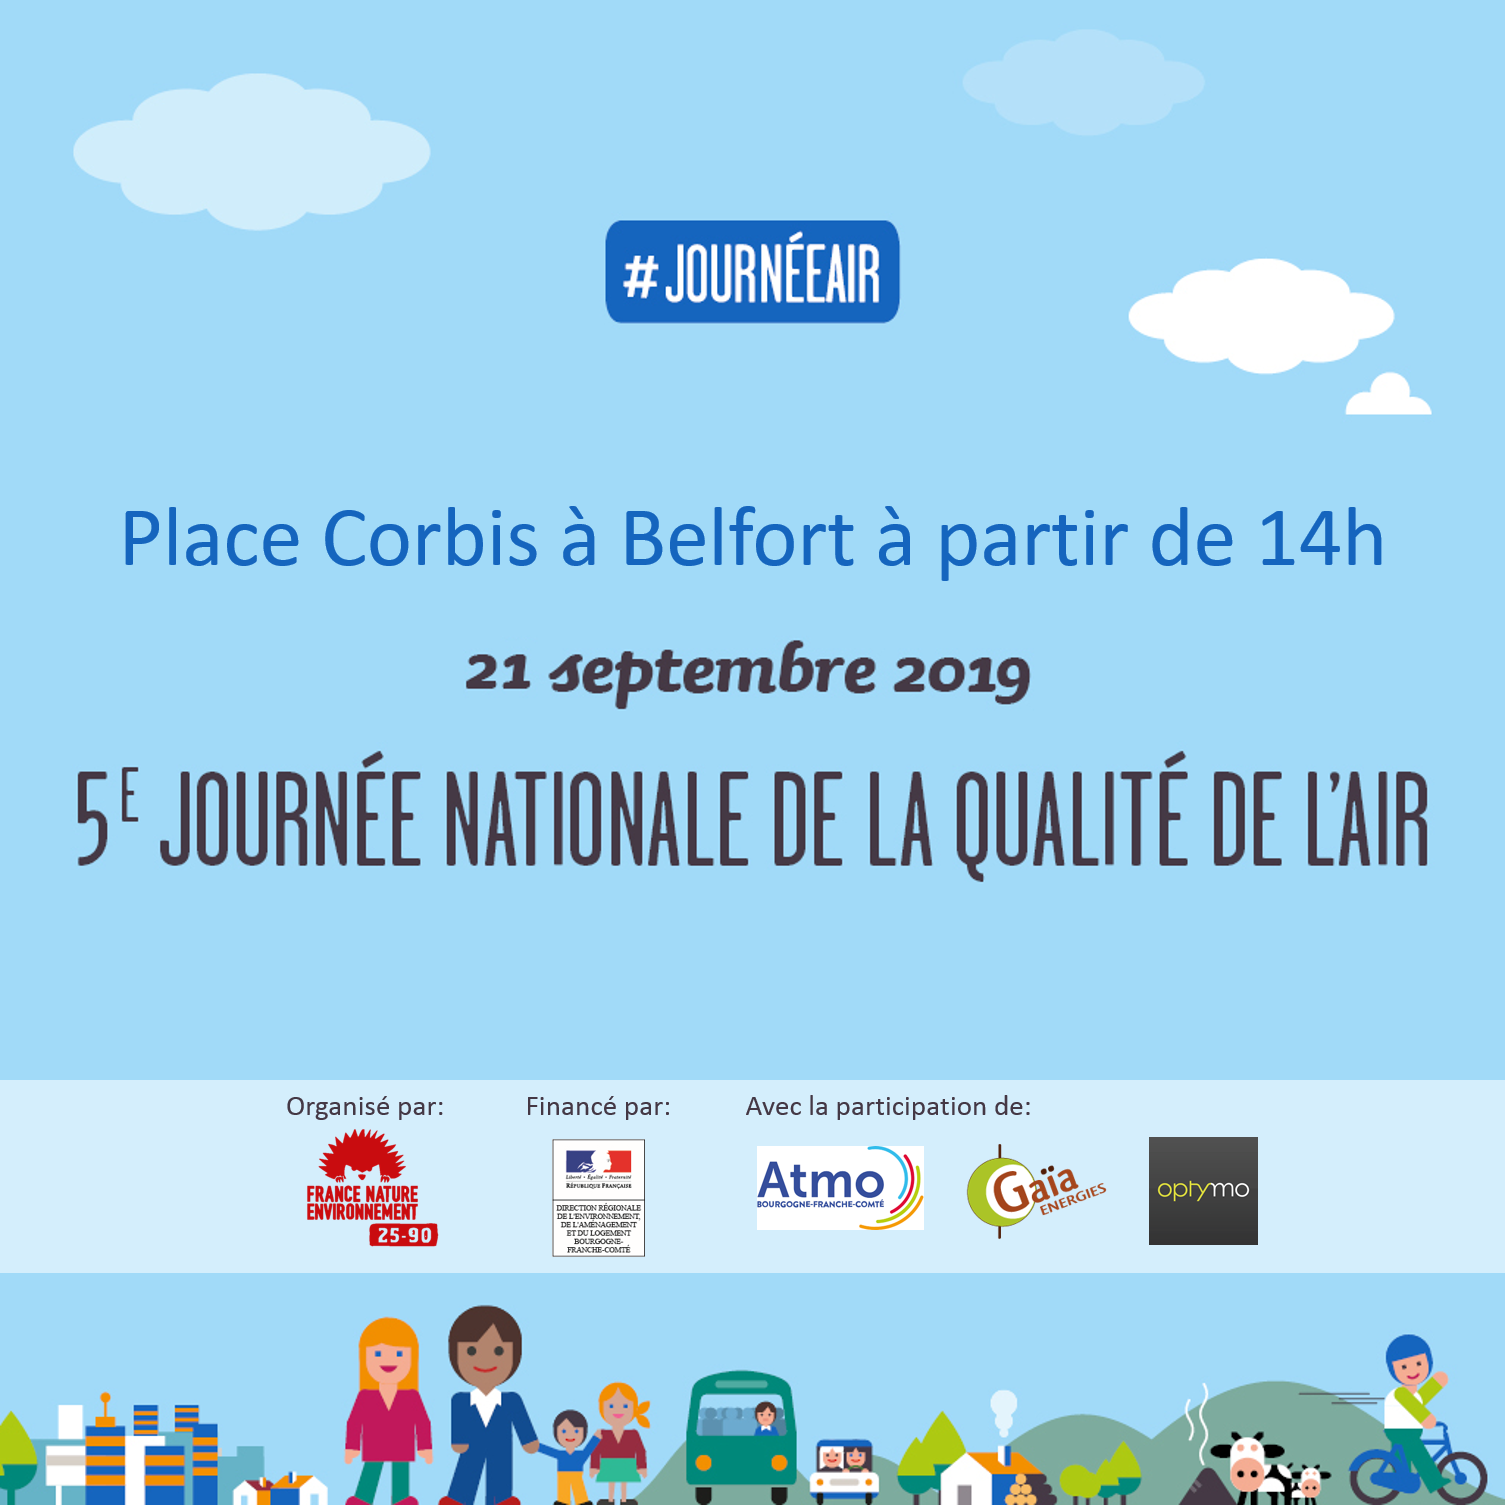 5e journée nationale de la qualité de l'air